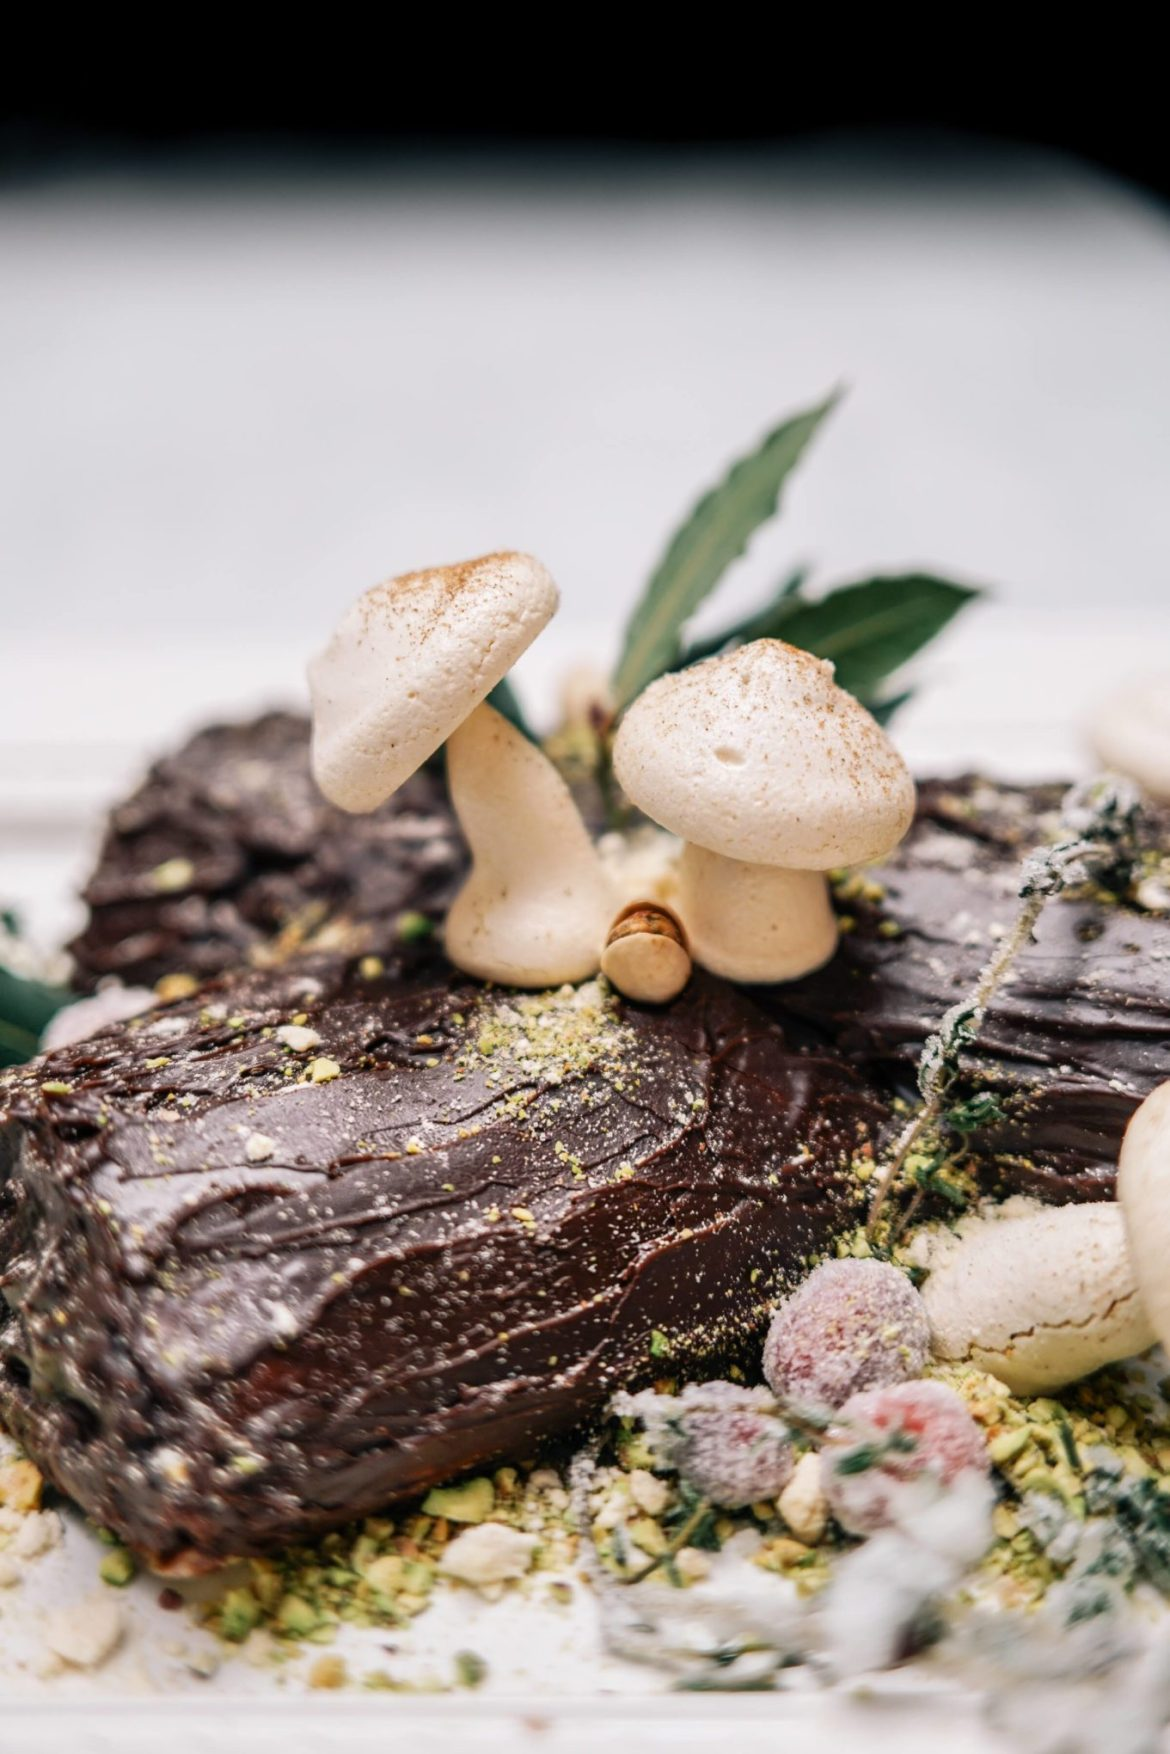 The Taste Edit makes a Bouche de Noel Christmas Yule Log - Learn how to make meringue mushrooms simply in the oven and a kitchen aid mixer